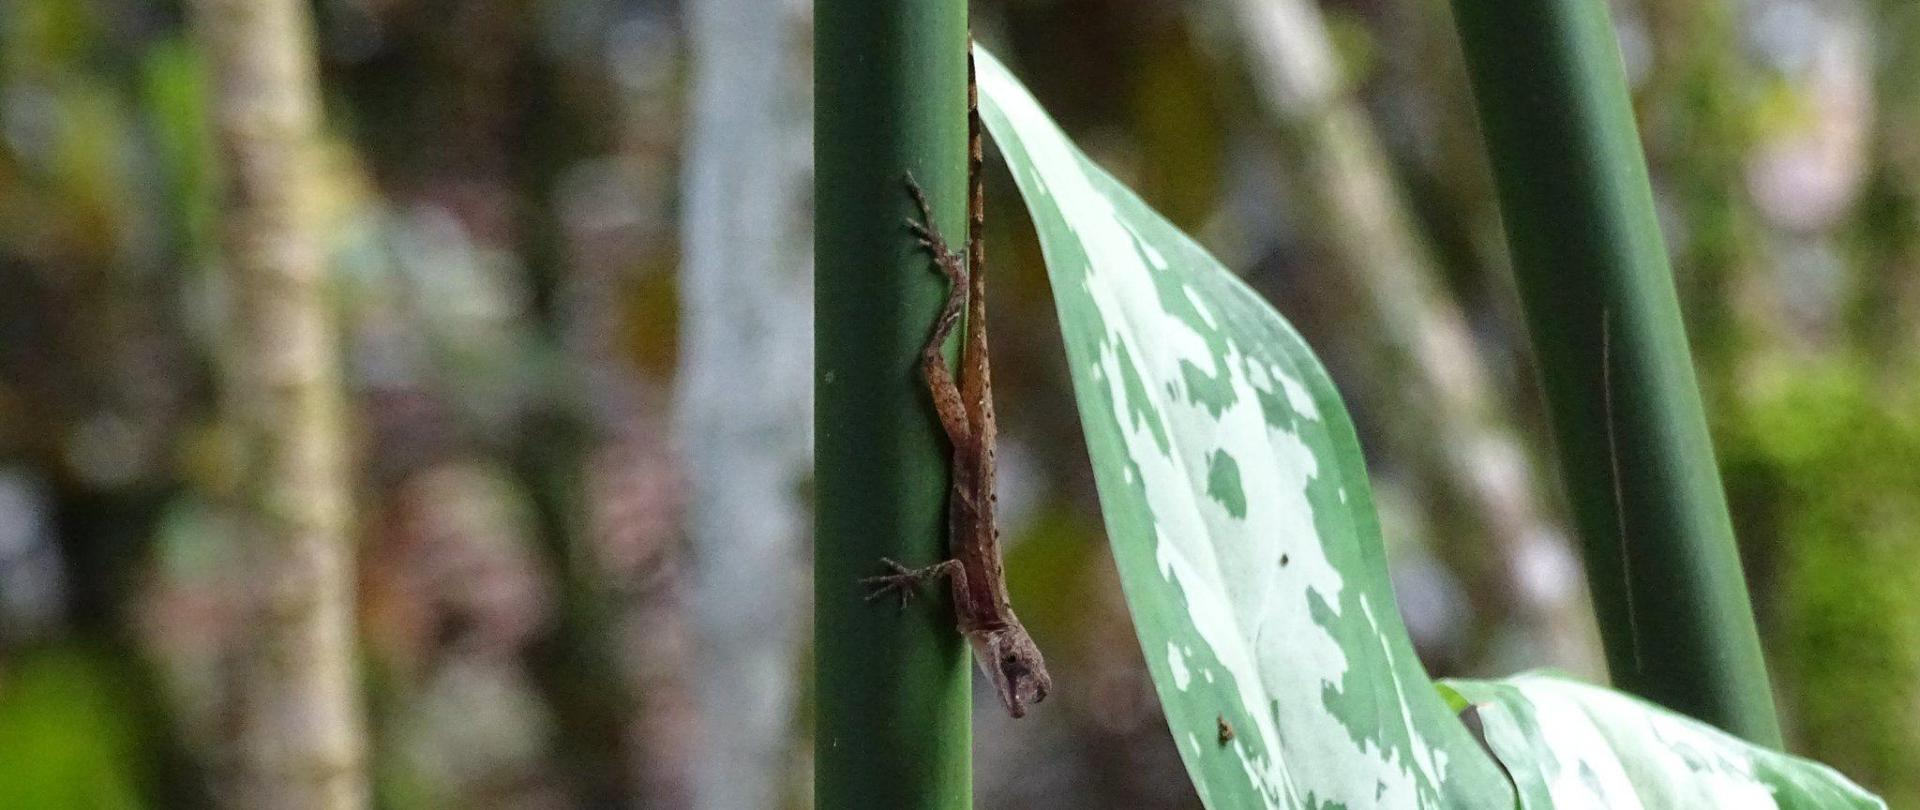 Lizard in our garden